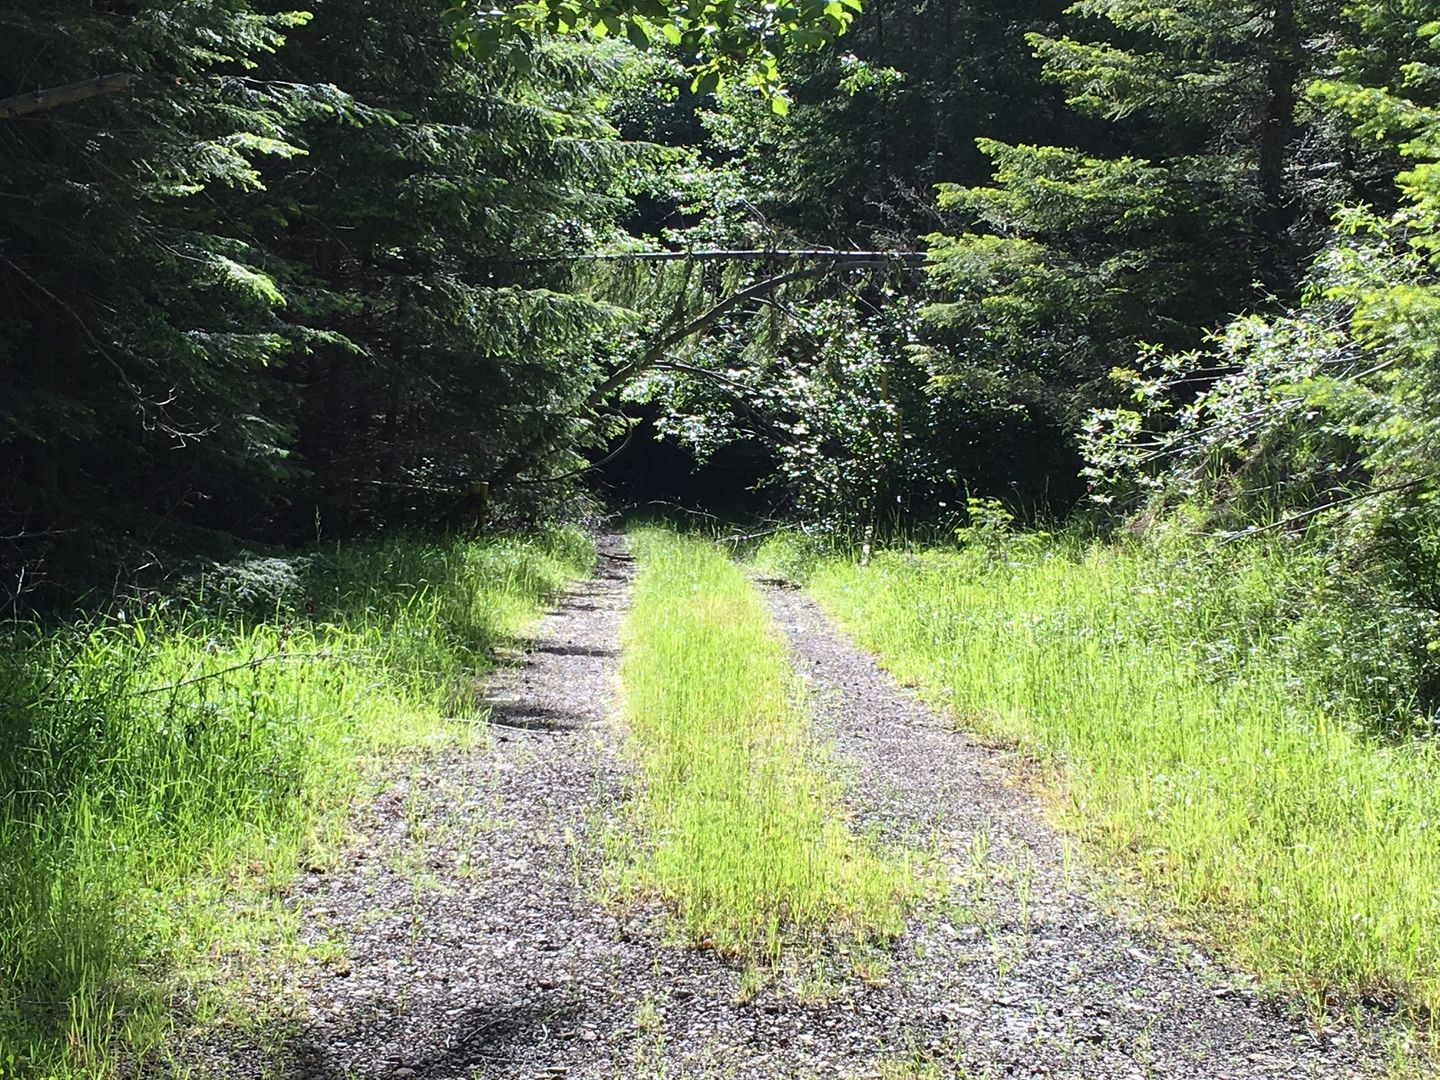 Midnight Creek / NF Road 7010 - Waypoint 6: Trail Intersection / #3154